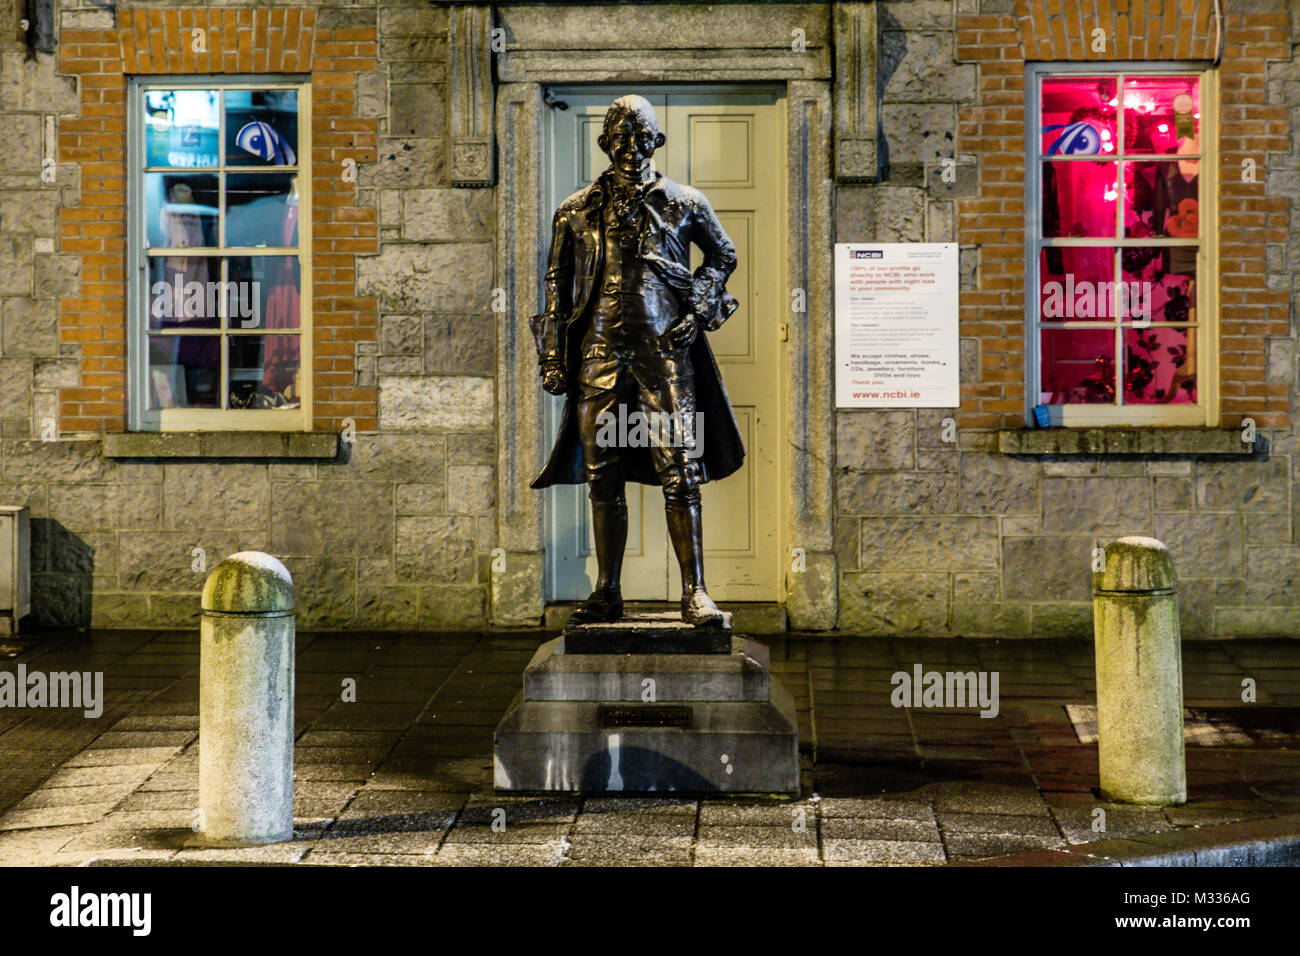 Brushed by light snow Arthur Guinness statue erected in 2013 in his hometown Celbridge in County Kildare, Ireland. - Stock Image